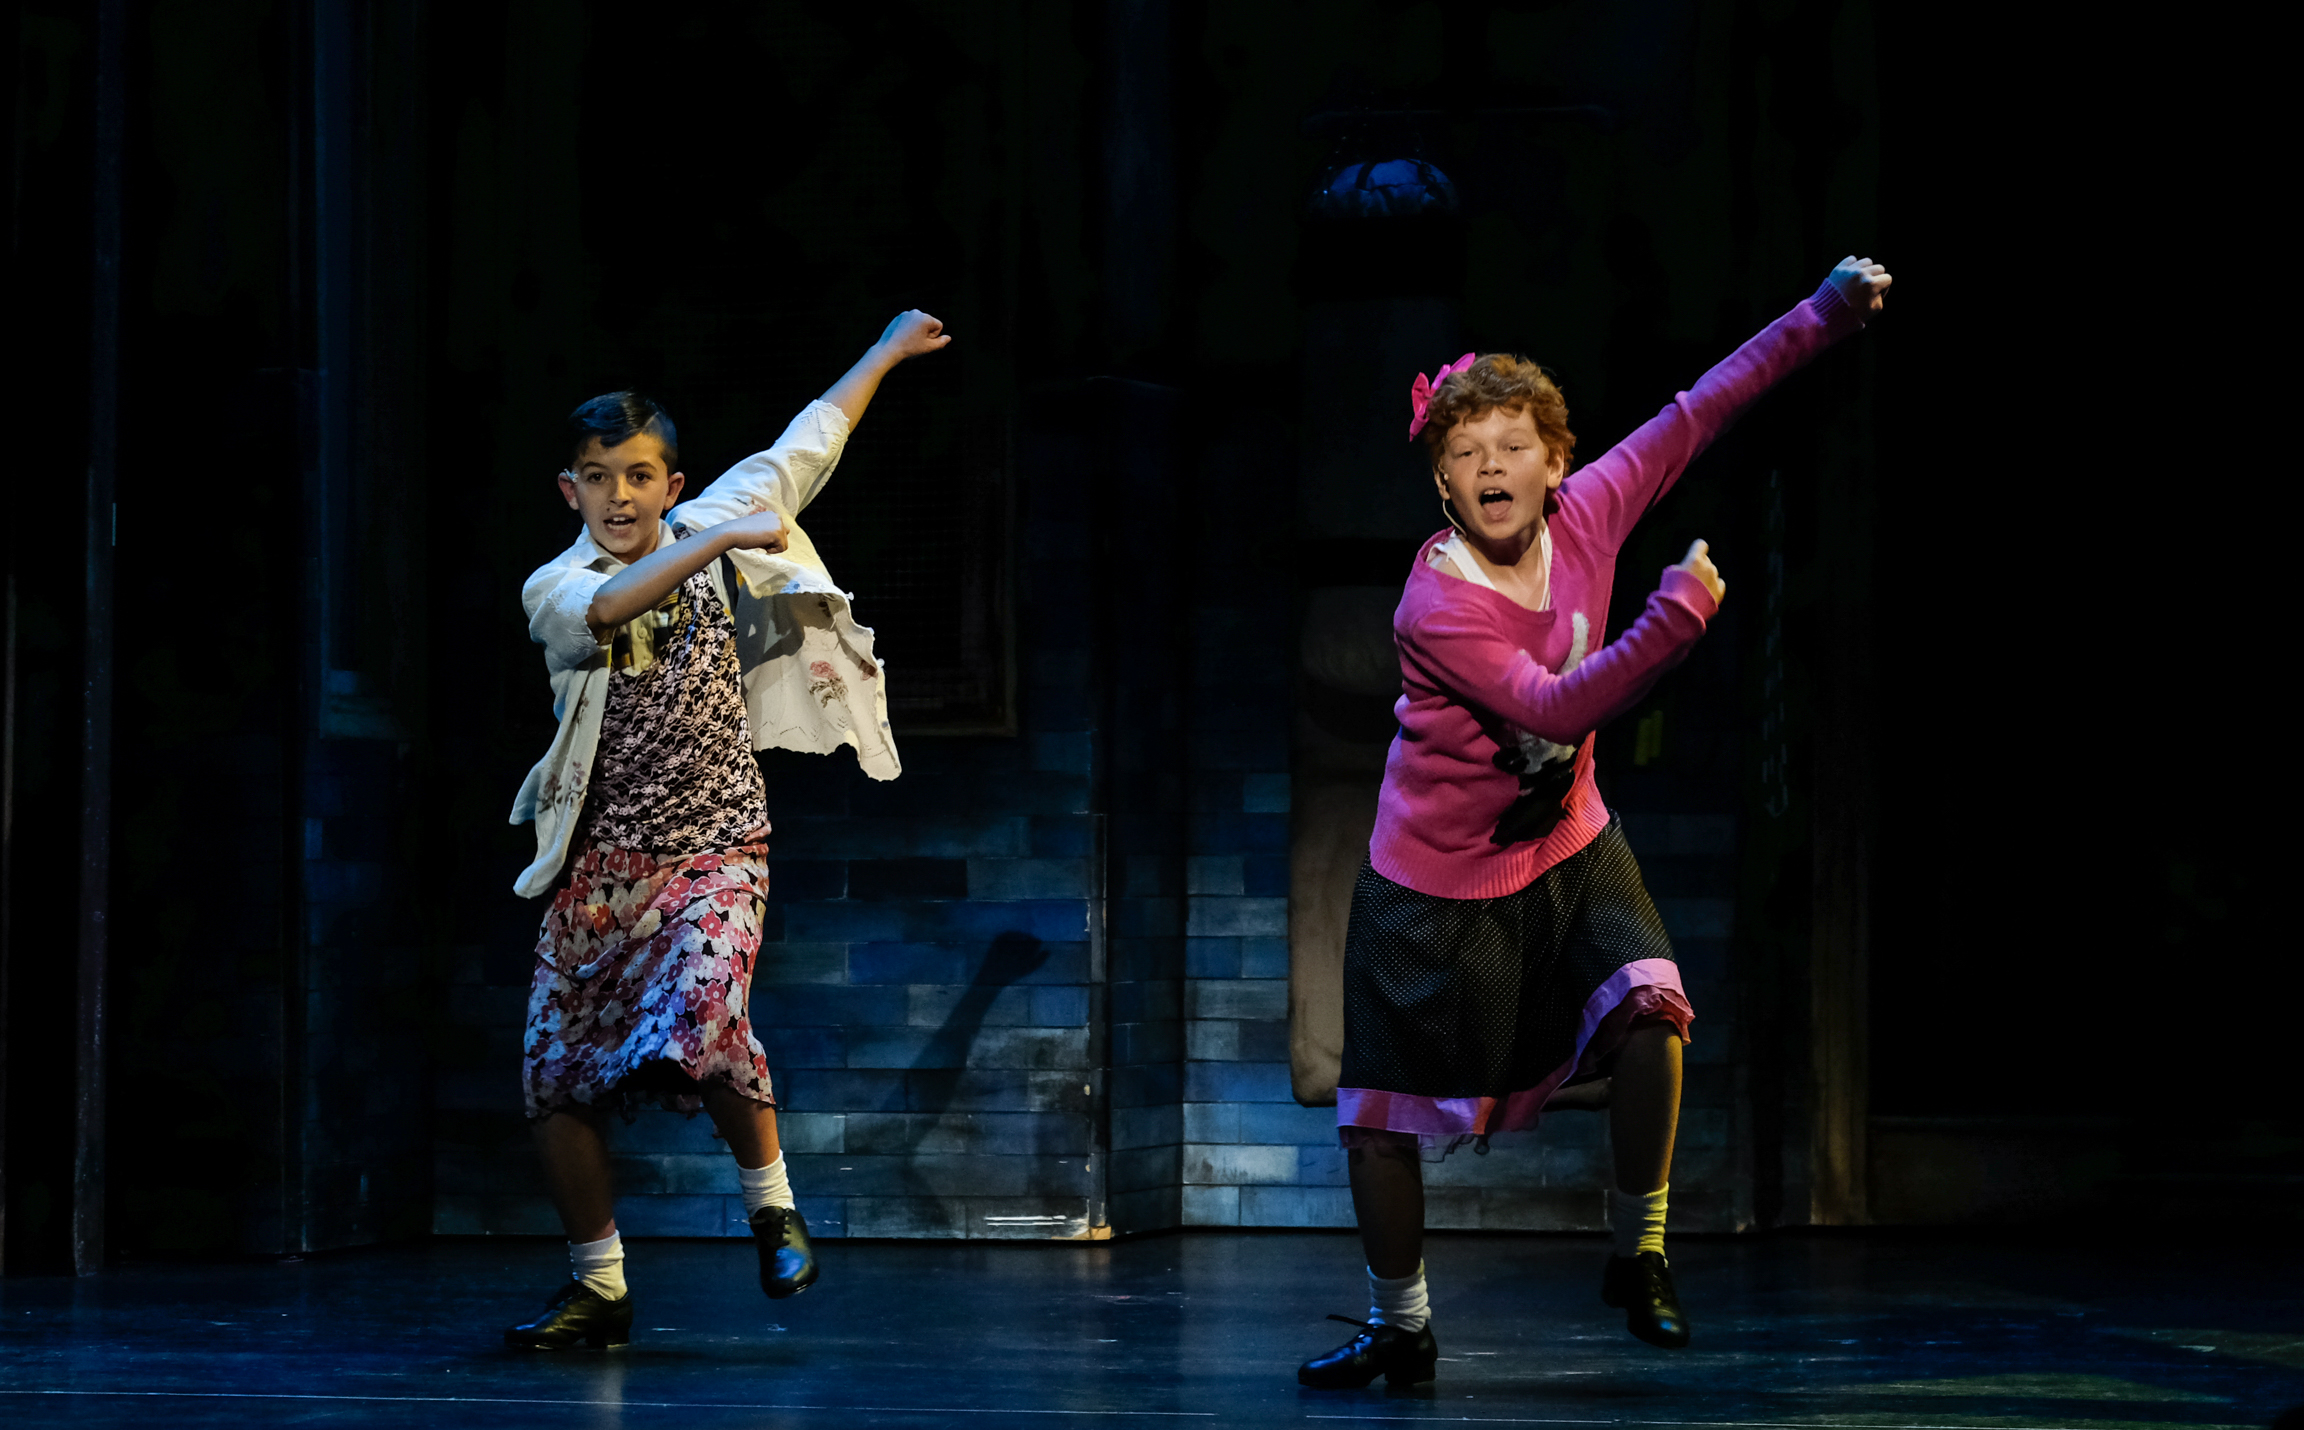 billy elliot musical theatre michael sdmt san diego charlie theater garton yourself express flash production meet jacques ken ballet california